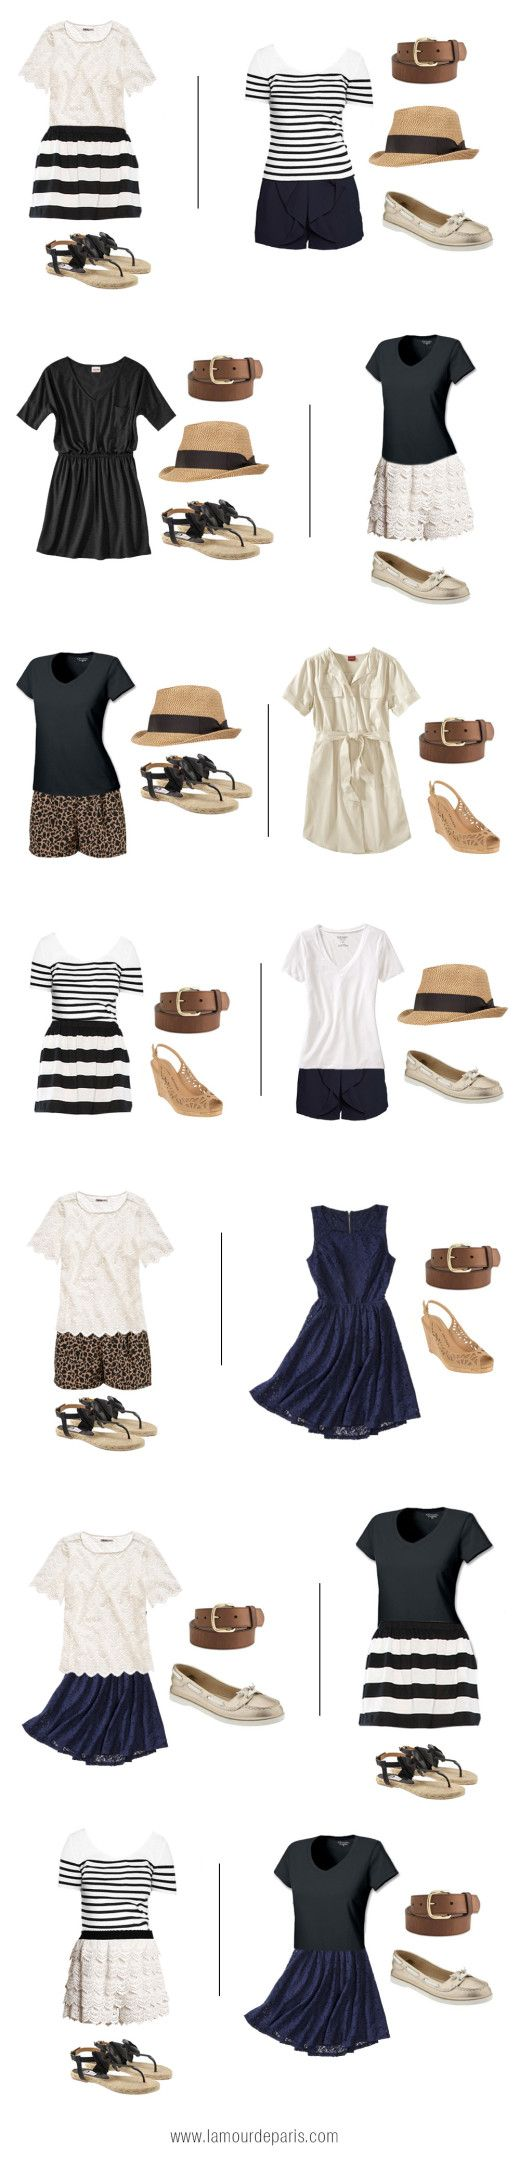 Packing for Paris, Summer Edition » L'Amour de Paris